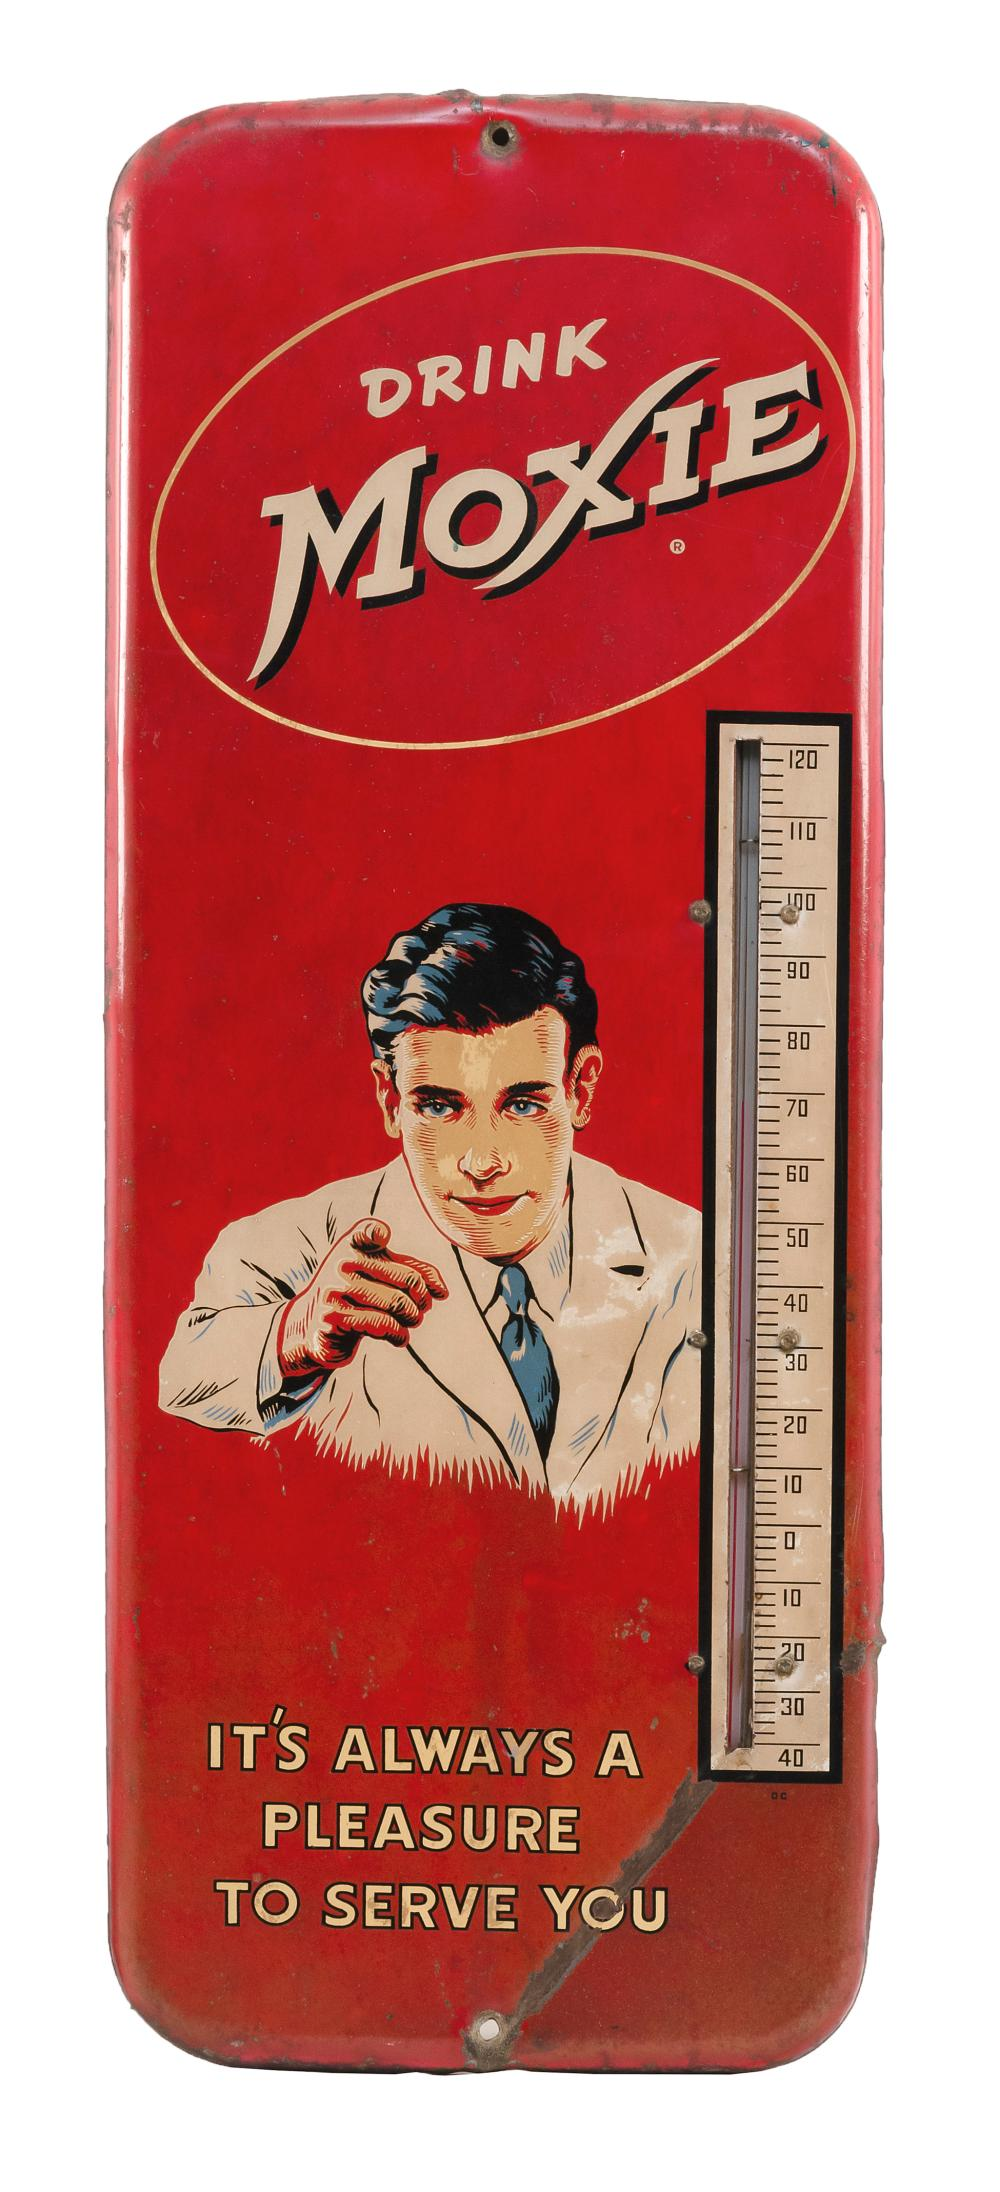 """VINTAGE ADVERTISING THERMOMETER FOR MOXIE SODA """"Drink Moxie"""" and """"It's always a pleasure to serve you"""" surrounding a pointing gentle.."""